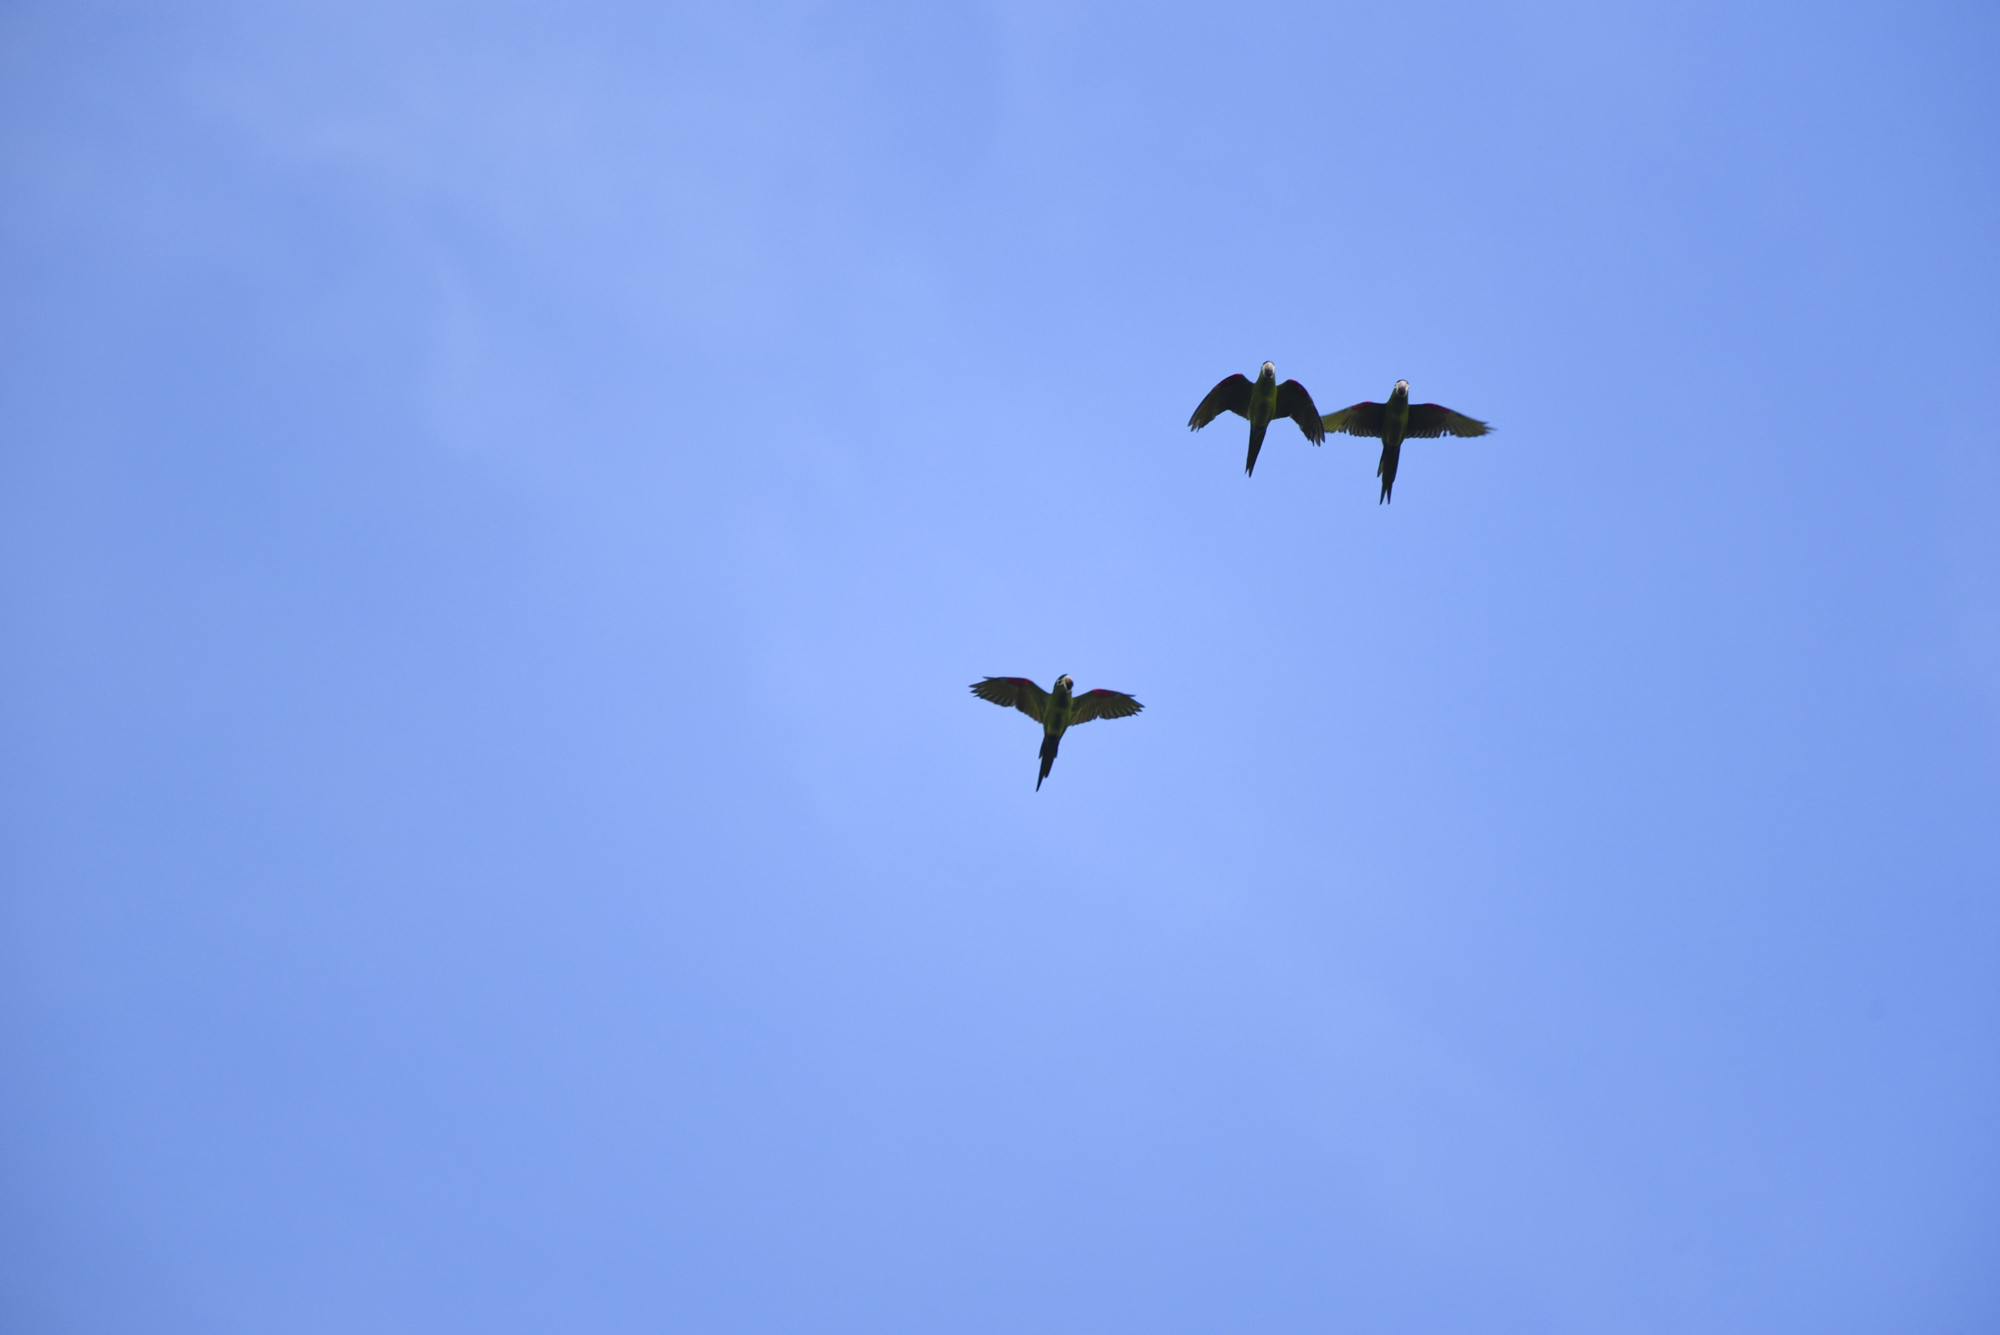 Red-shouldered macaws ( Diopsittaca nobilis ), the smallest of the macaws, are endemic to Pampas de Heath but have recently been spotted in new locations, presumed to be spreading their range.